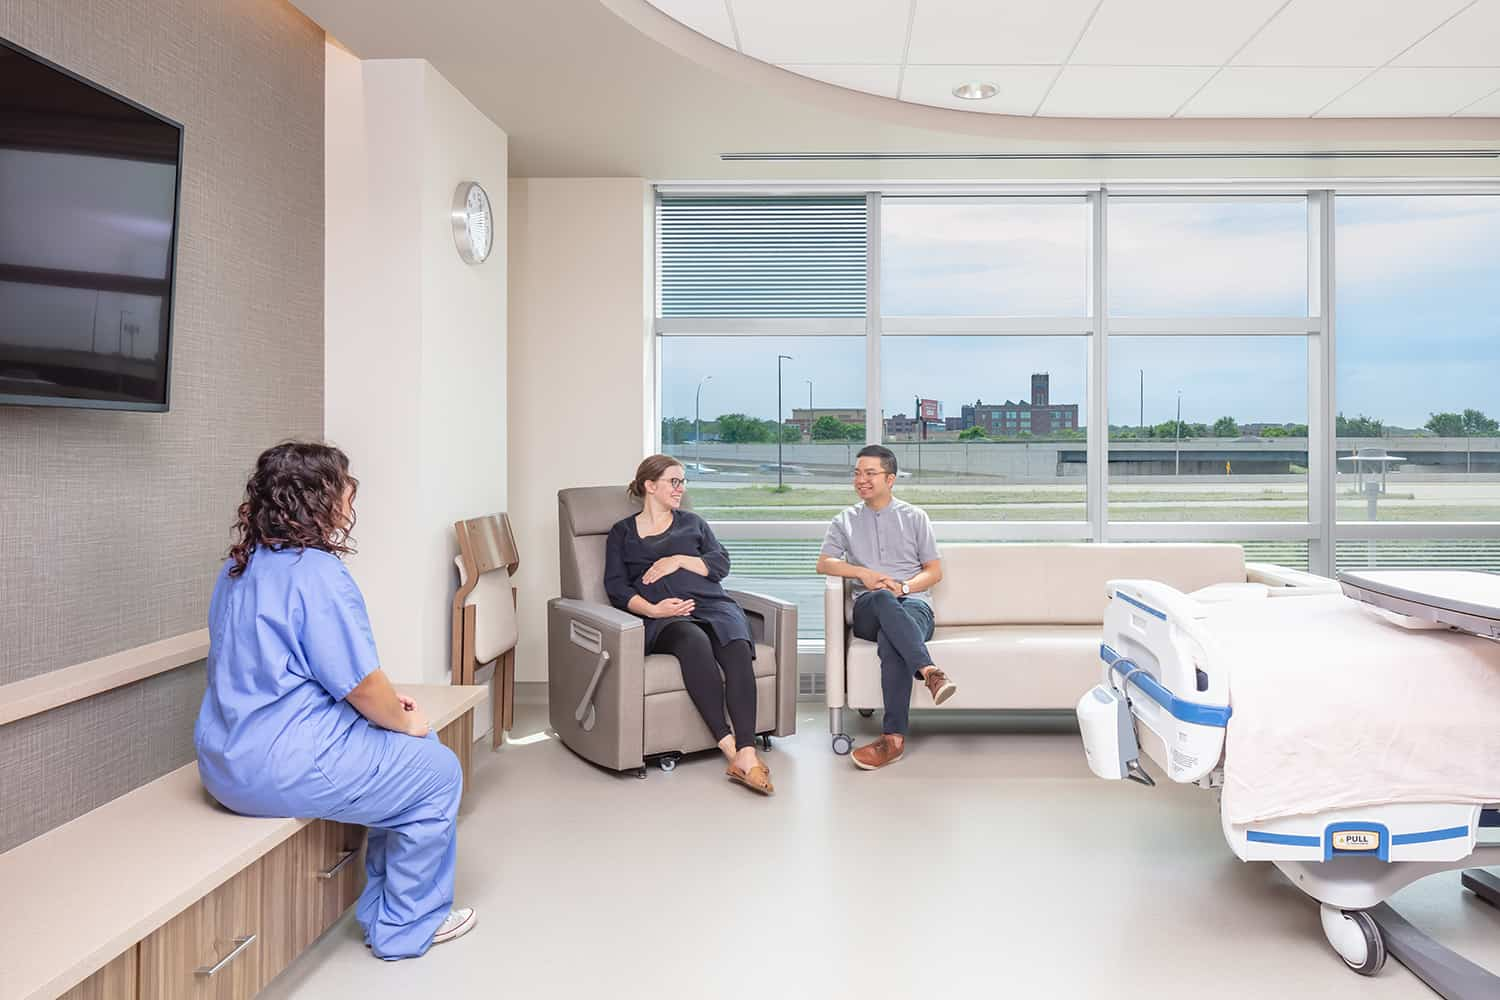 A family enjoying the seating space in a post op room.